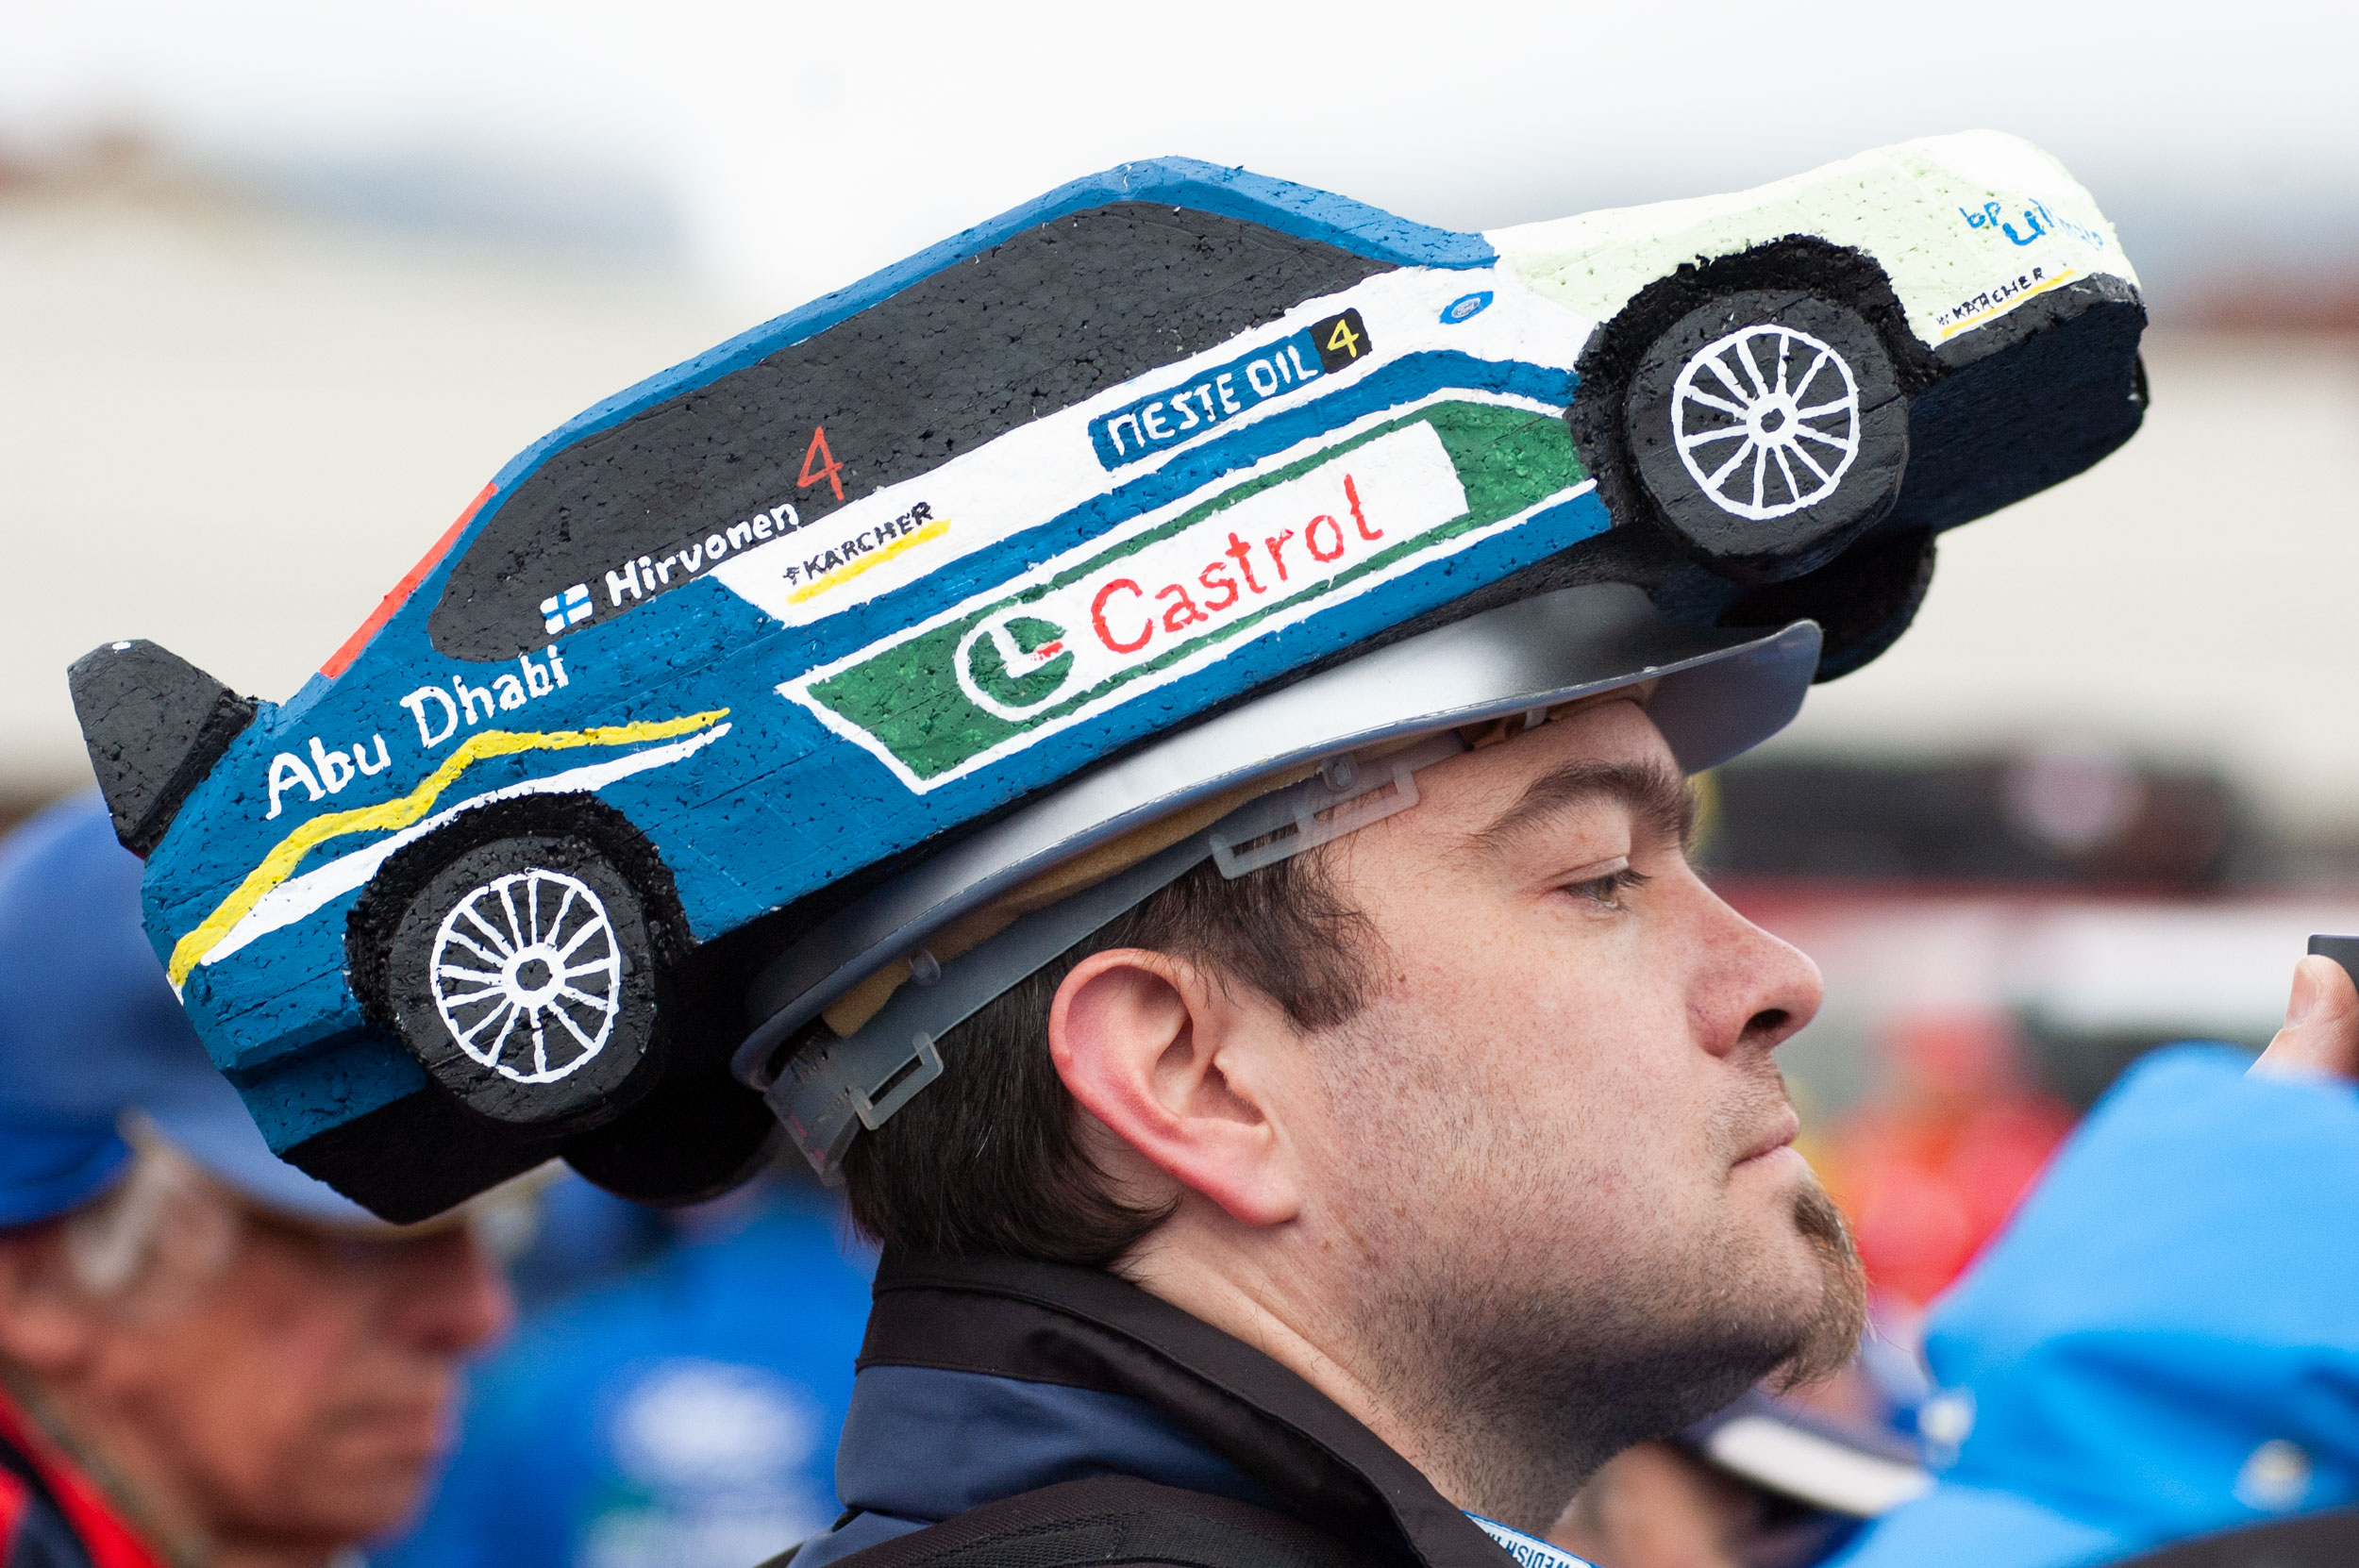 WRC, Rally Finnland, Fan, Helm, Fotoreportage, Willi Nothers